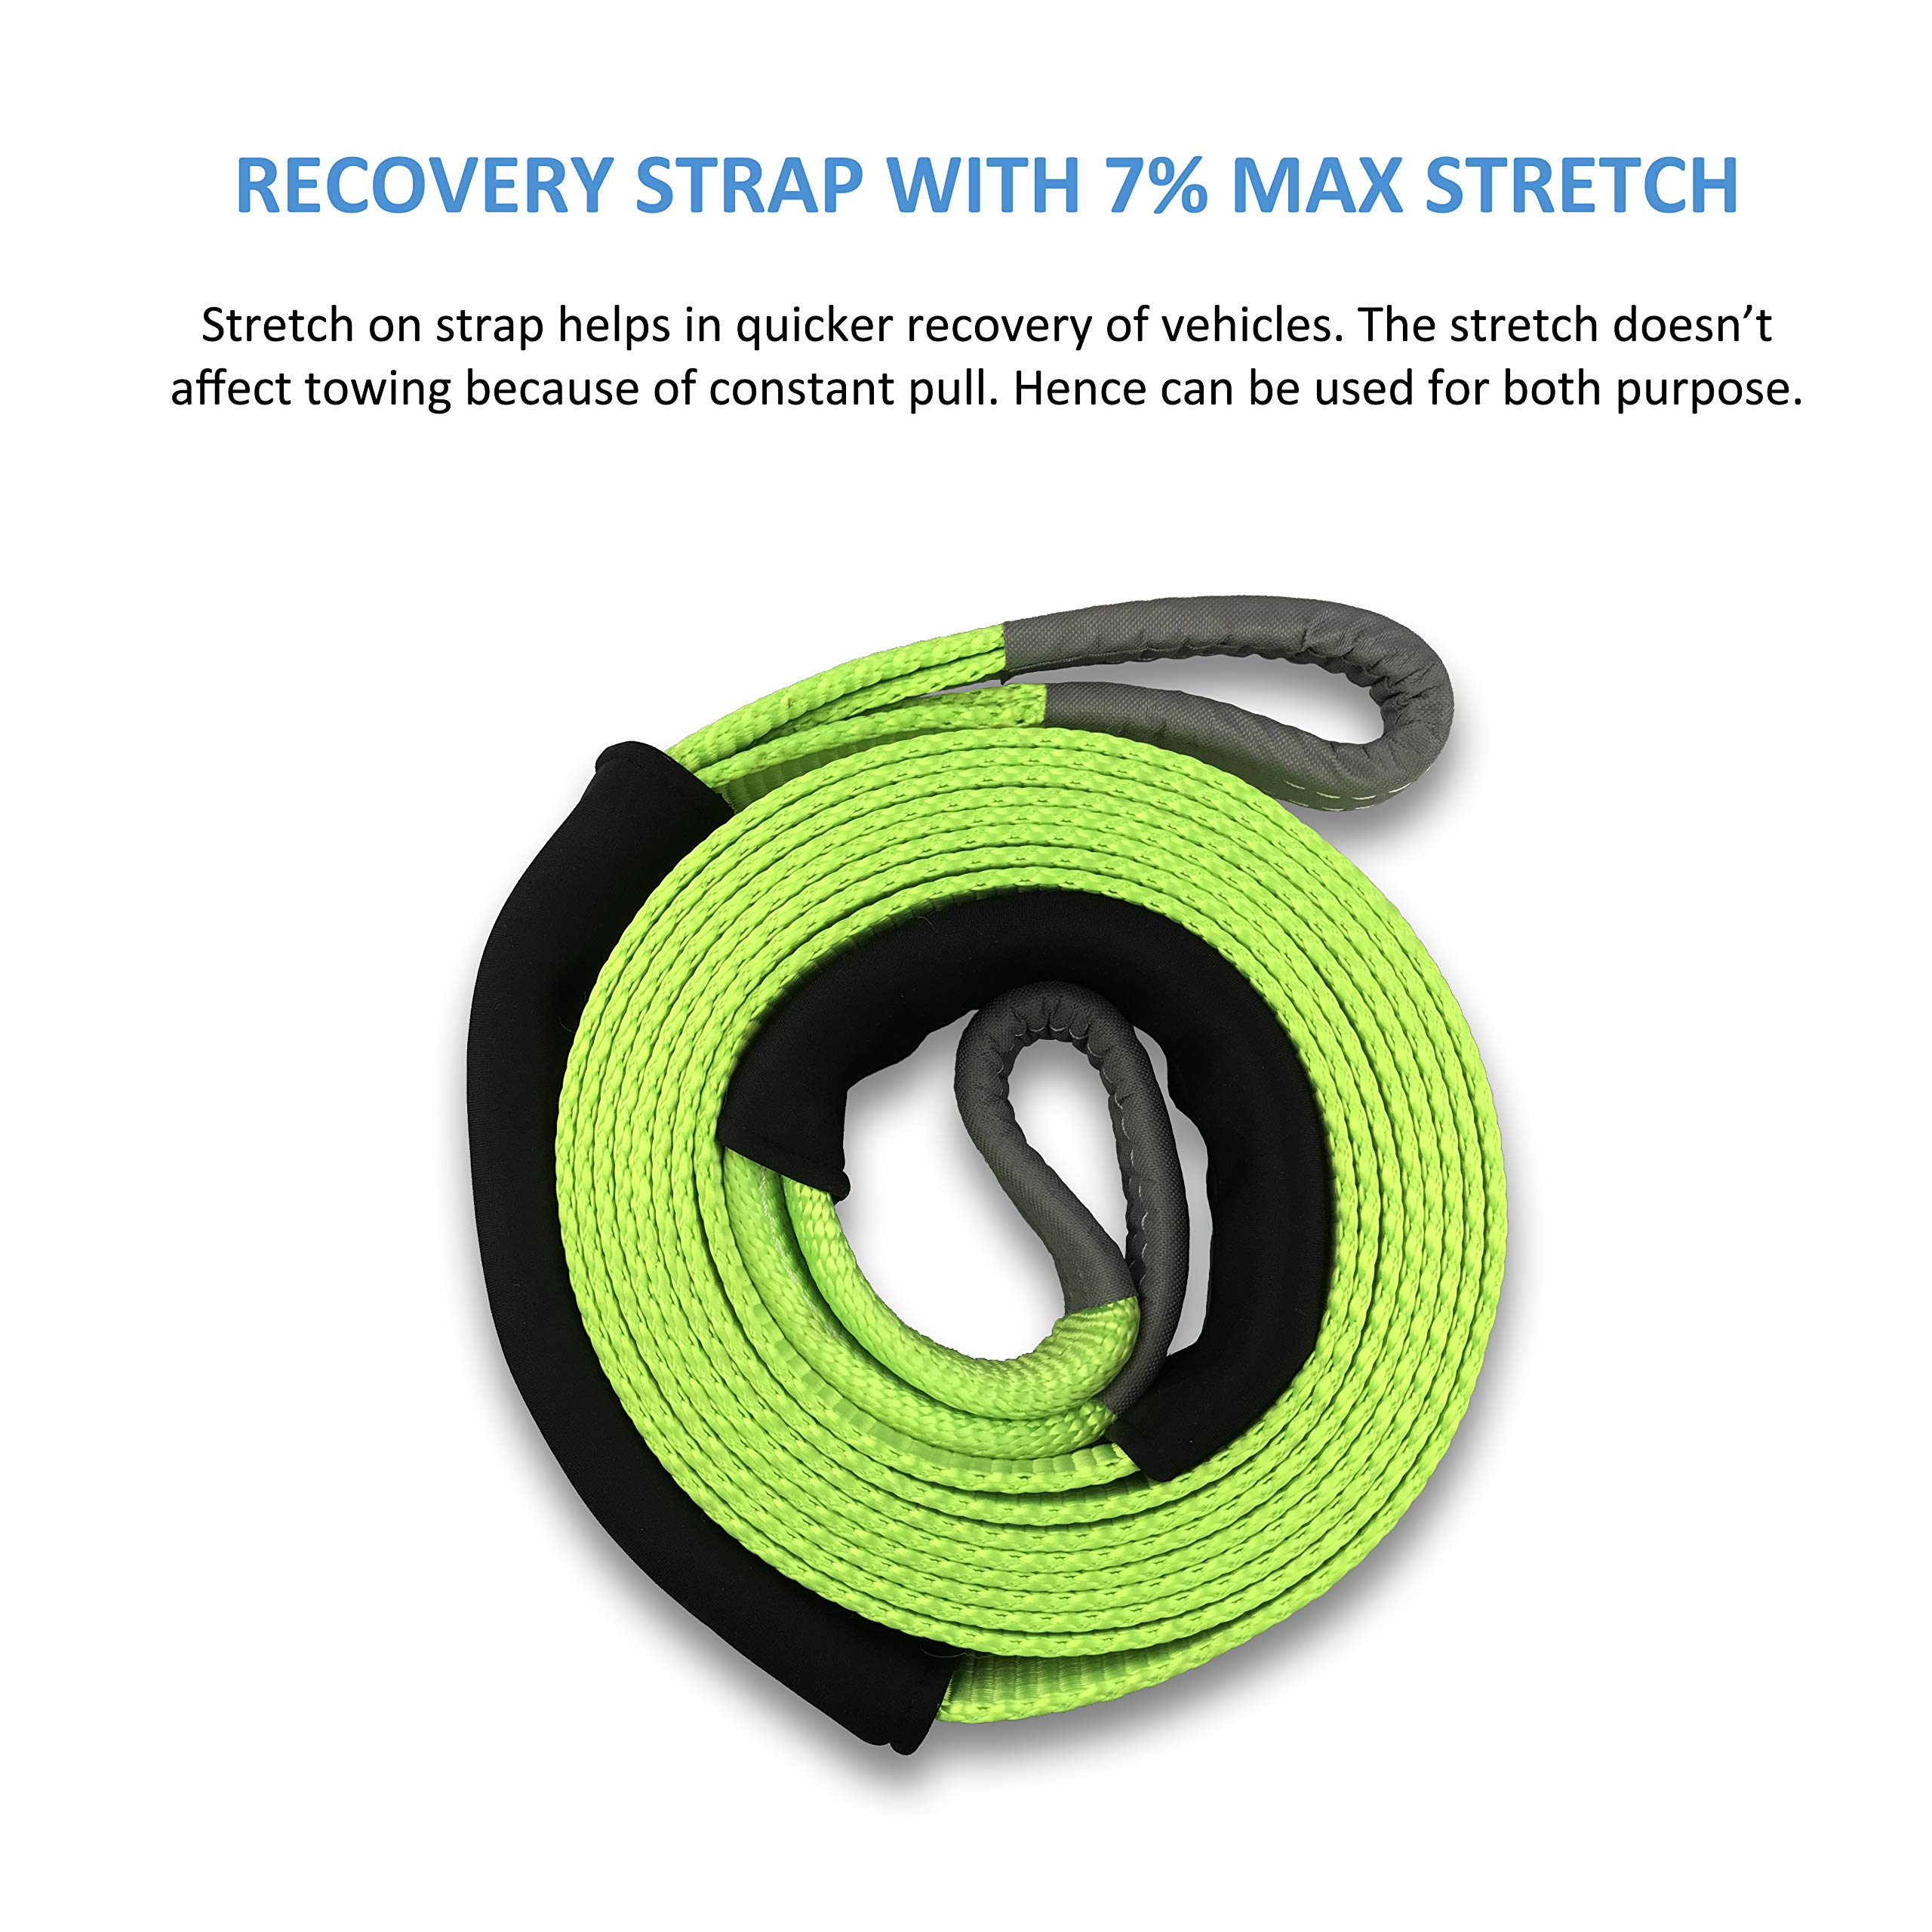 Ultimate Tow Recovery Strap 35000lb - Recover Your Vehicle Stuck in Mud/Snow - Heavy Duty 3'' x 20' Winch Snatch Strap - Protective Loops, Water-Resistant - Off Road Truck Accessory - Bonus Storage Bag by Sunferno